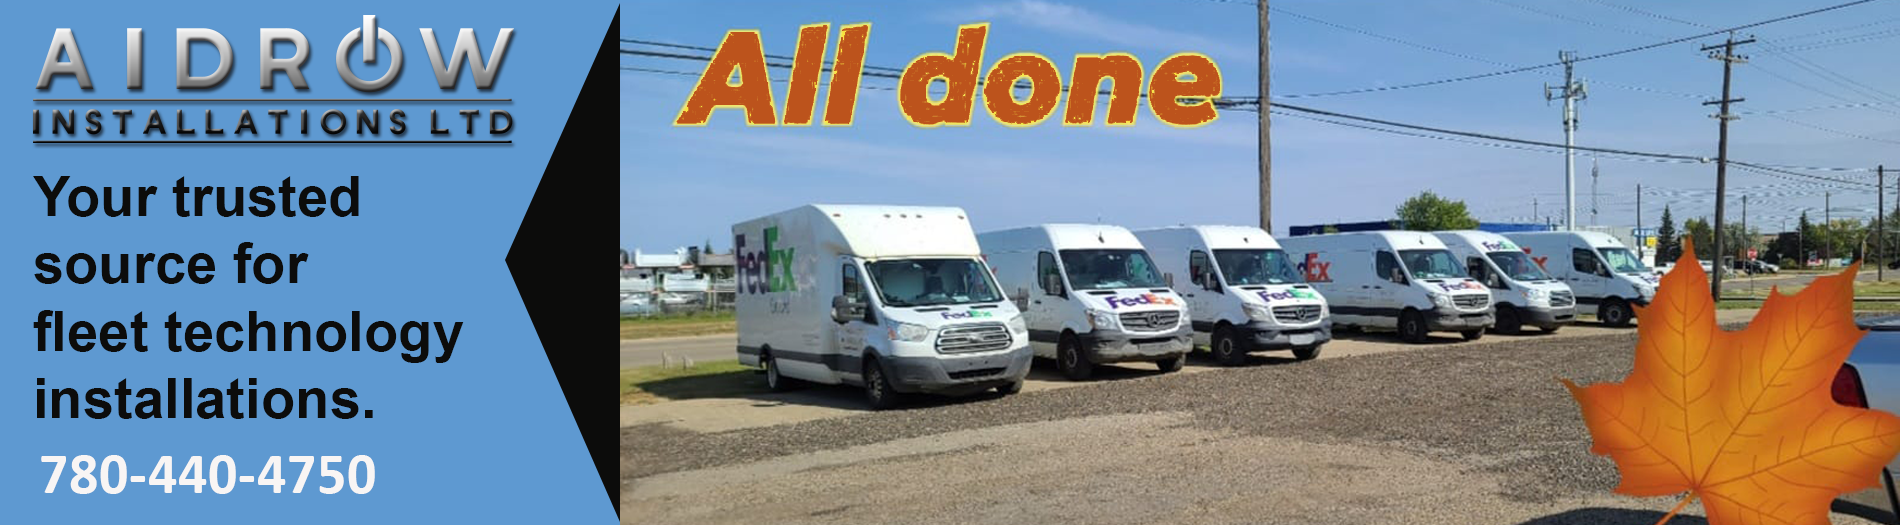 Aidrow is your trusted source for fleet technology installations